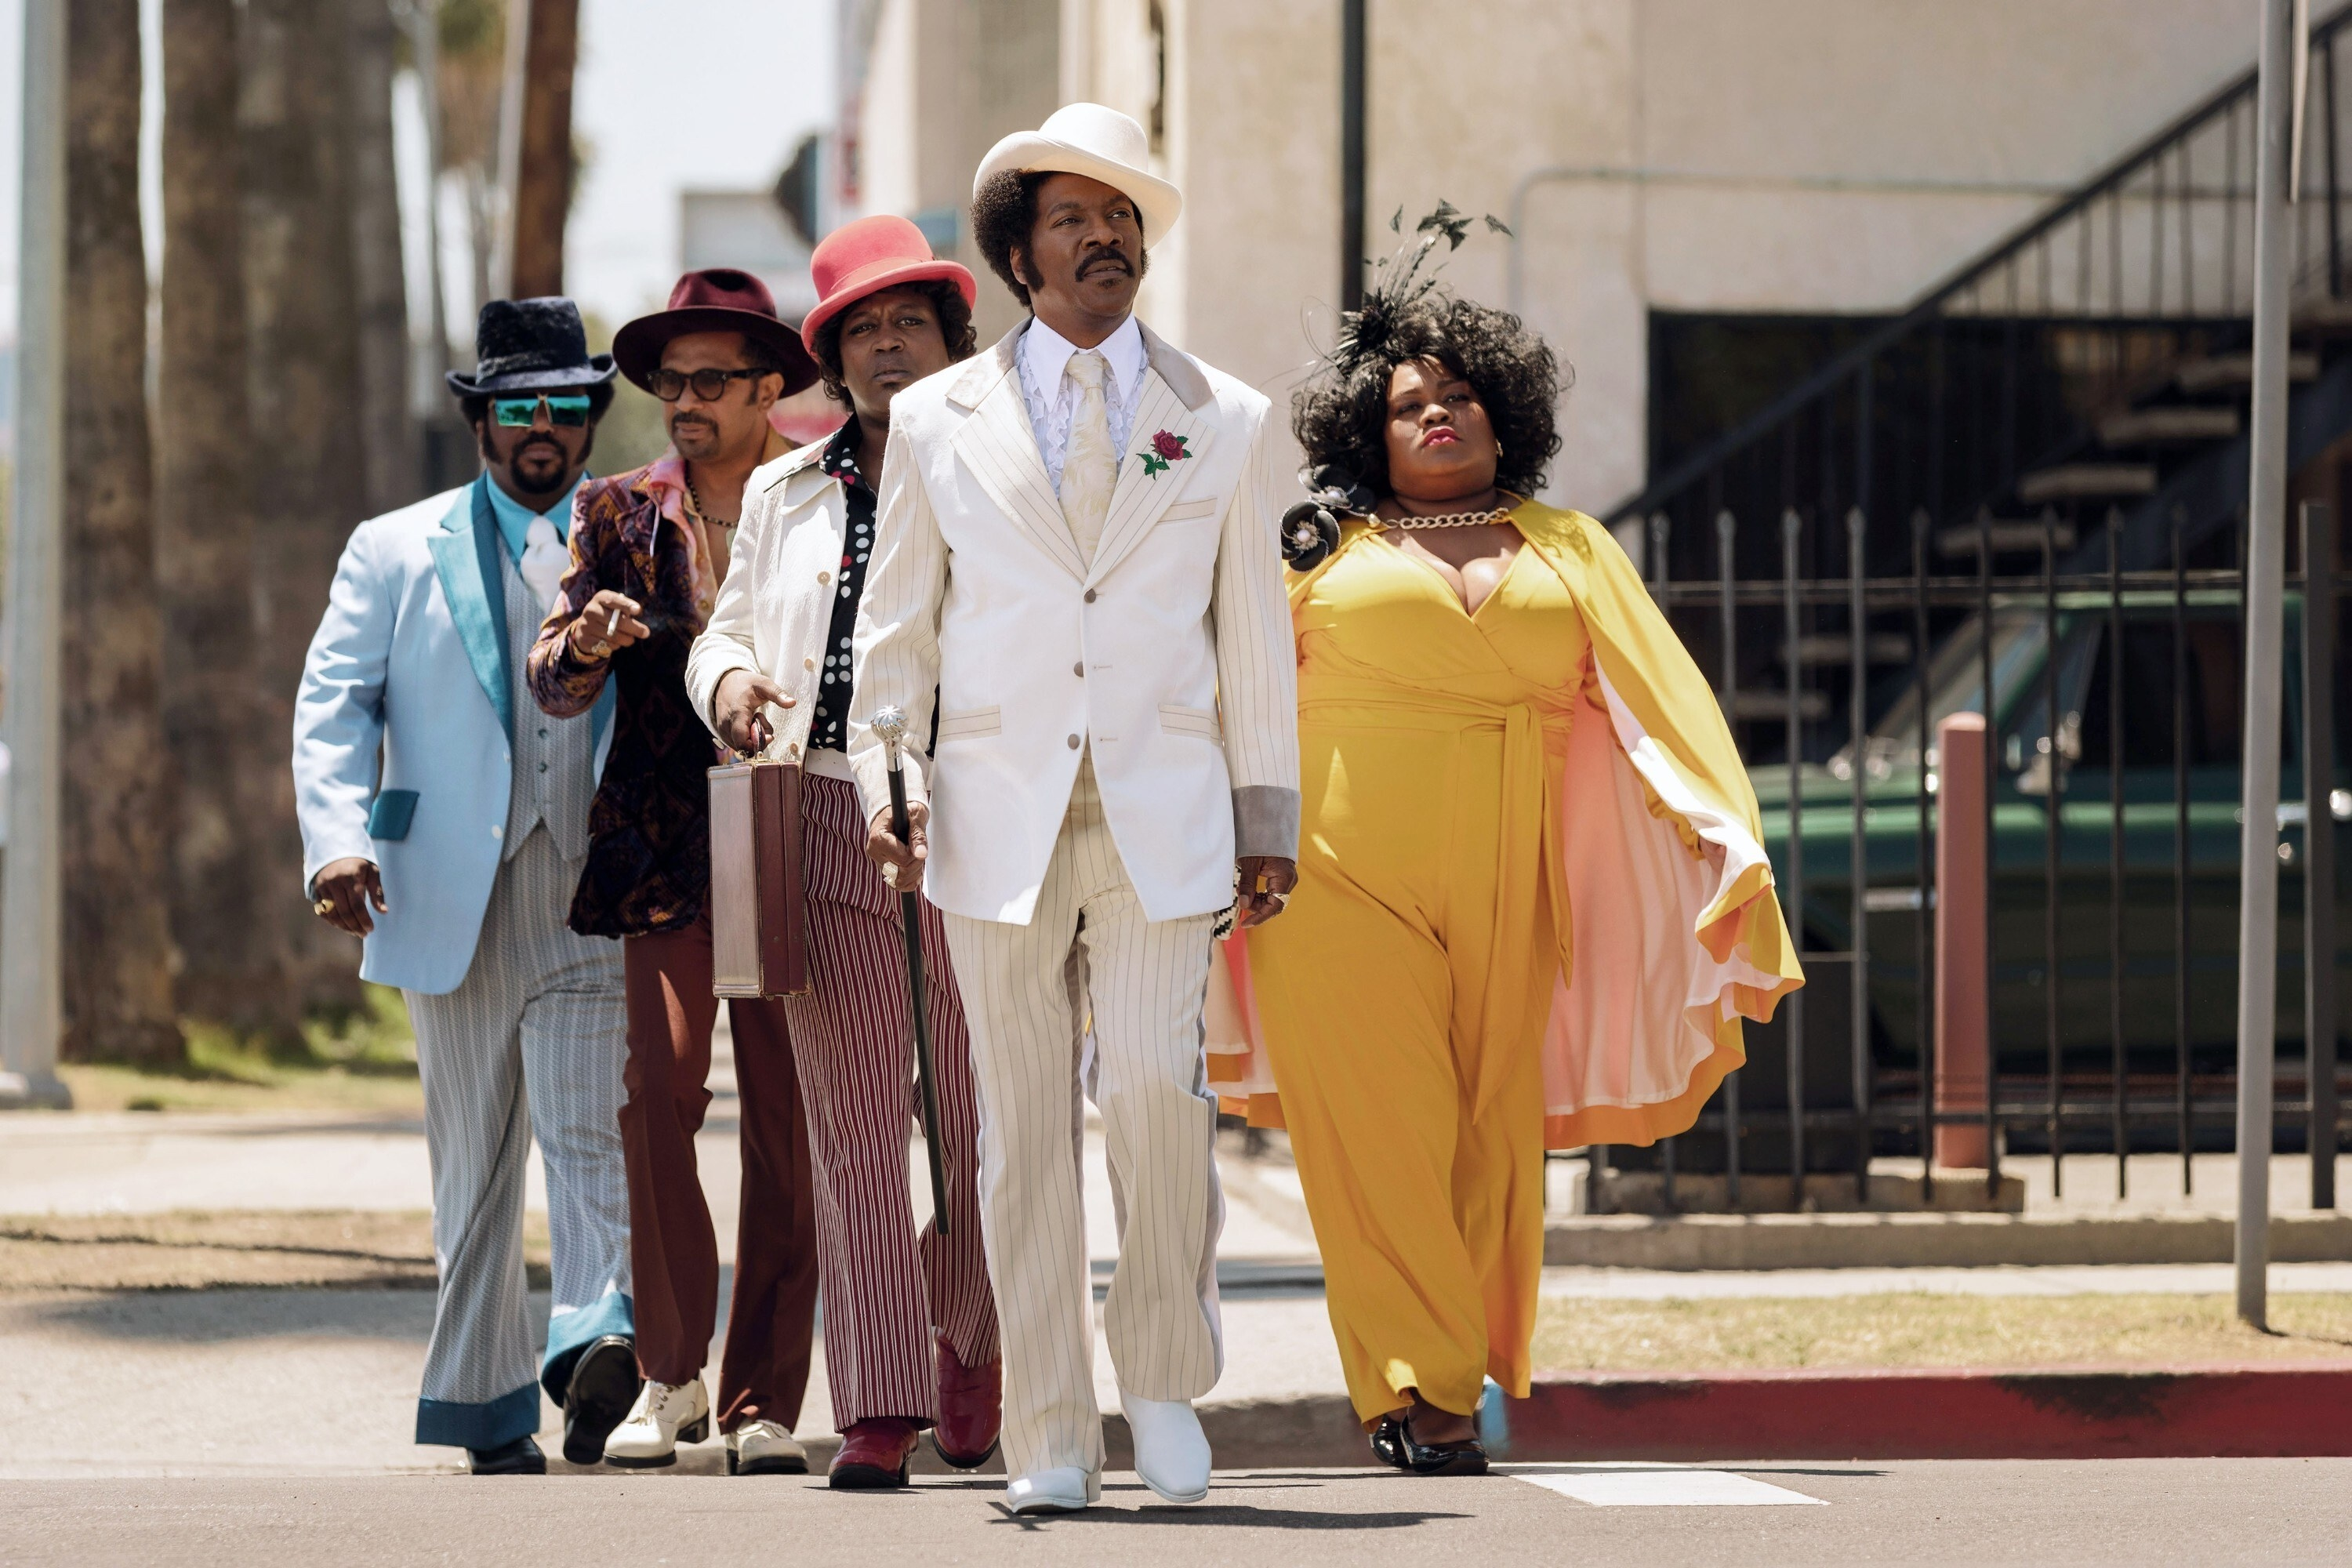 Craig Robinson, Mike Epps, Tituss Burgess, Eddie Murphy as Rudy Ray Moore, Da'Vine Joy Randolph walking in a scene from the film DOLEMITE IS MY NAME